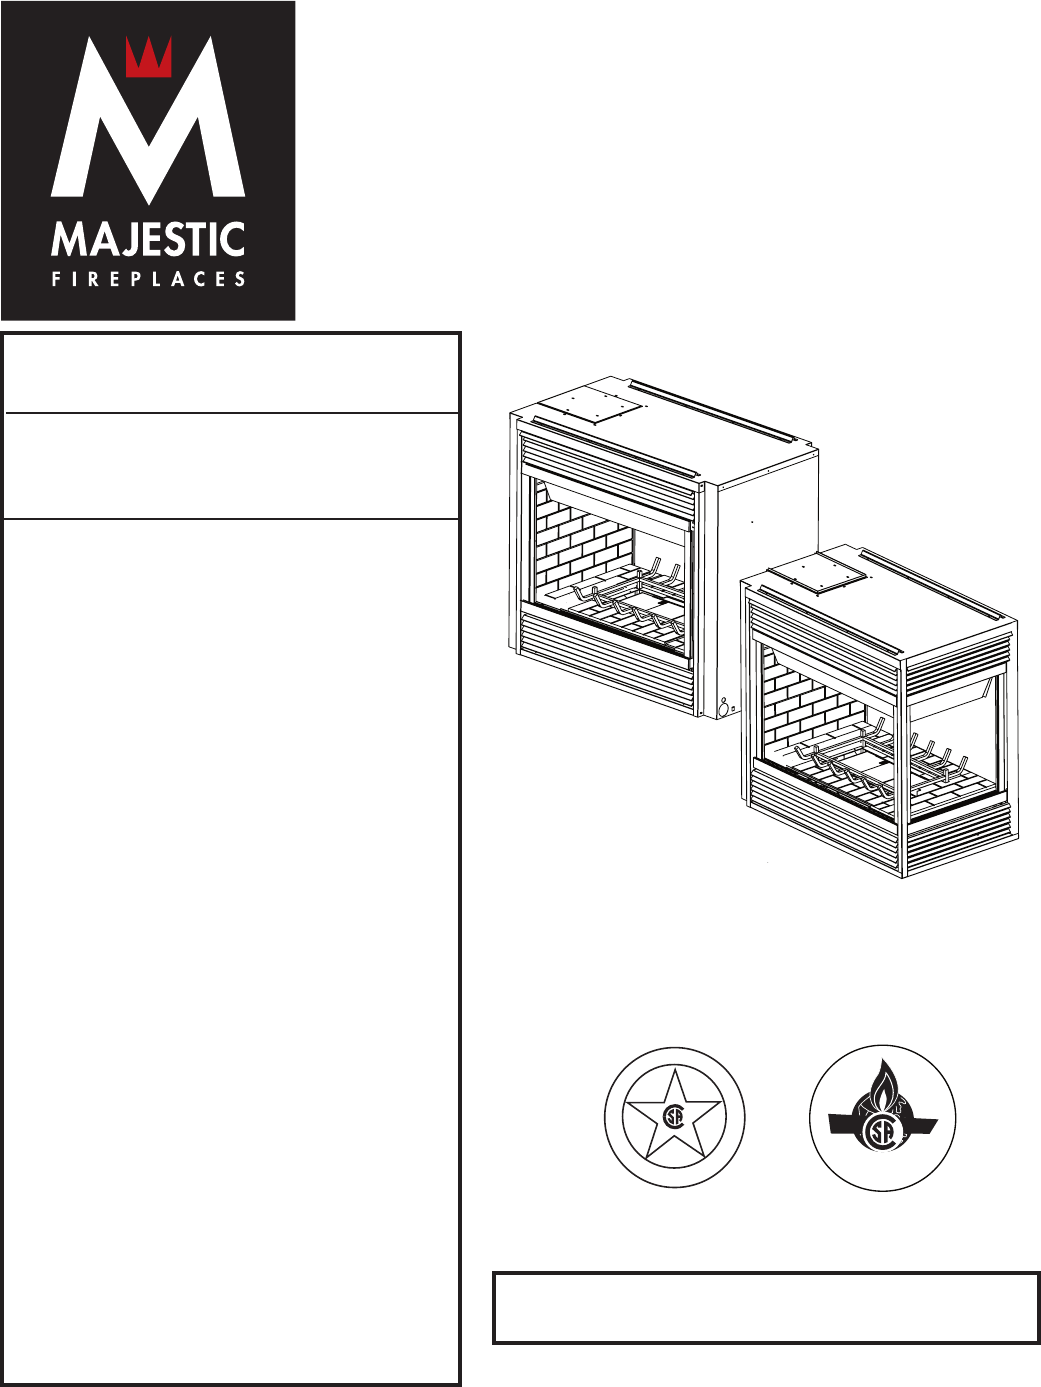 majestic appliances indoor fireplace 360dvs3 user guide